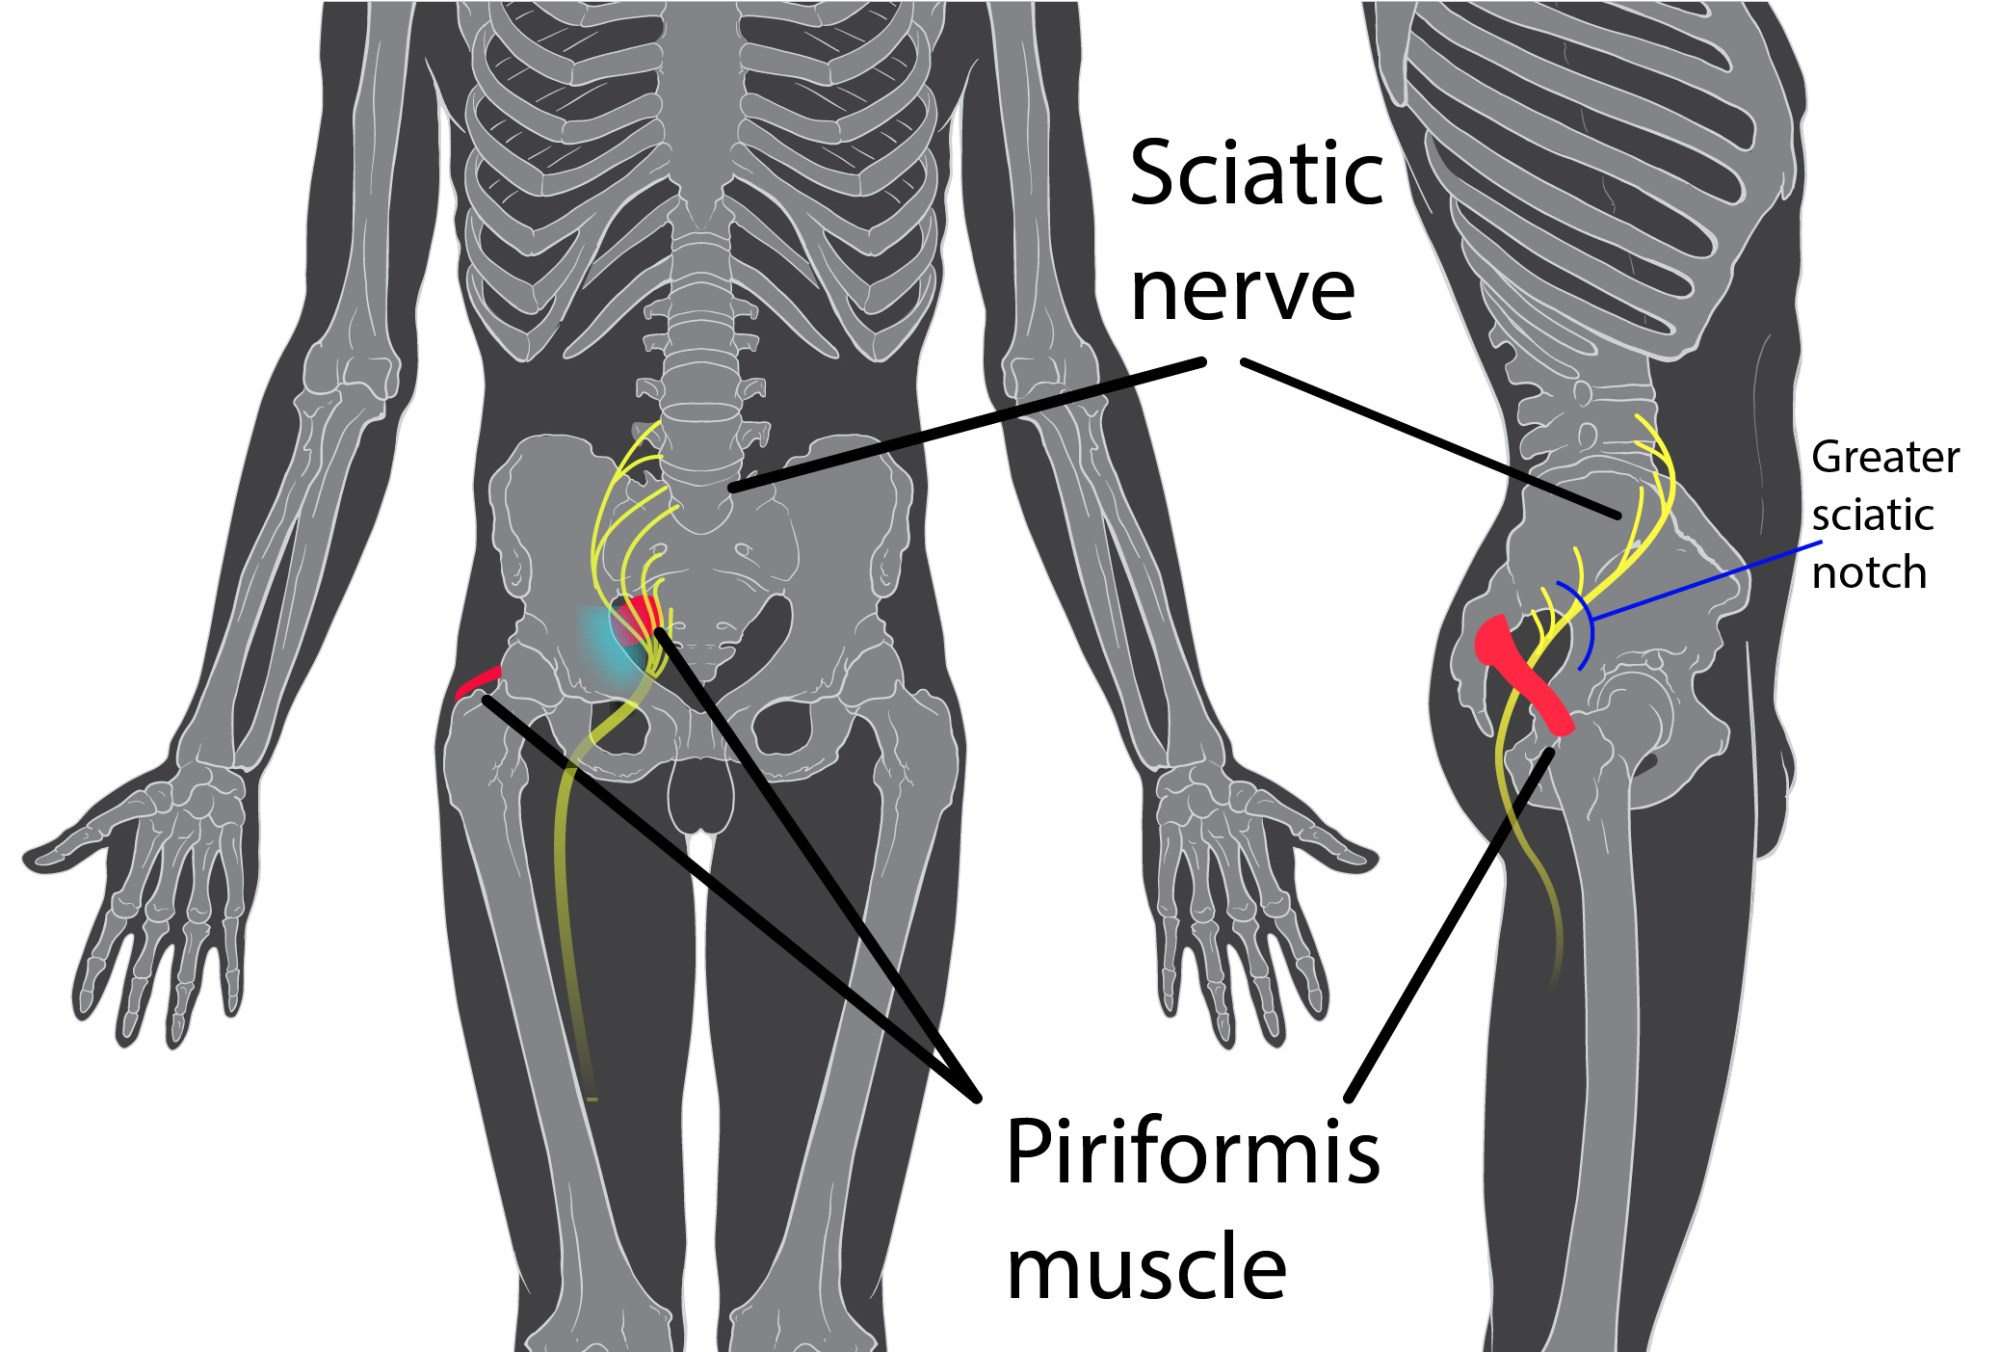 hight resolution of a 2017 study by rimmalapudi and kumar investigated the incidence of sacroiliac si joint dysfunction being diagnosed in patients after undergoing lumbar